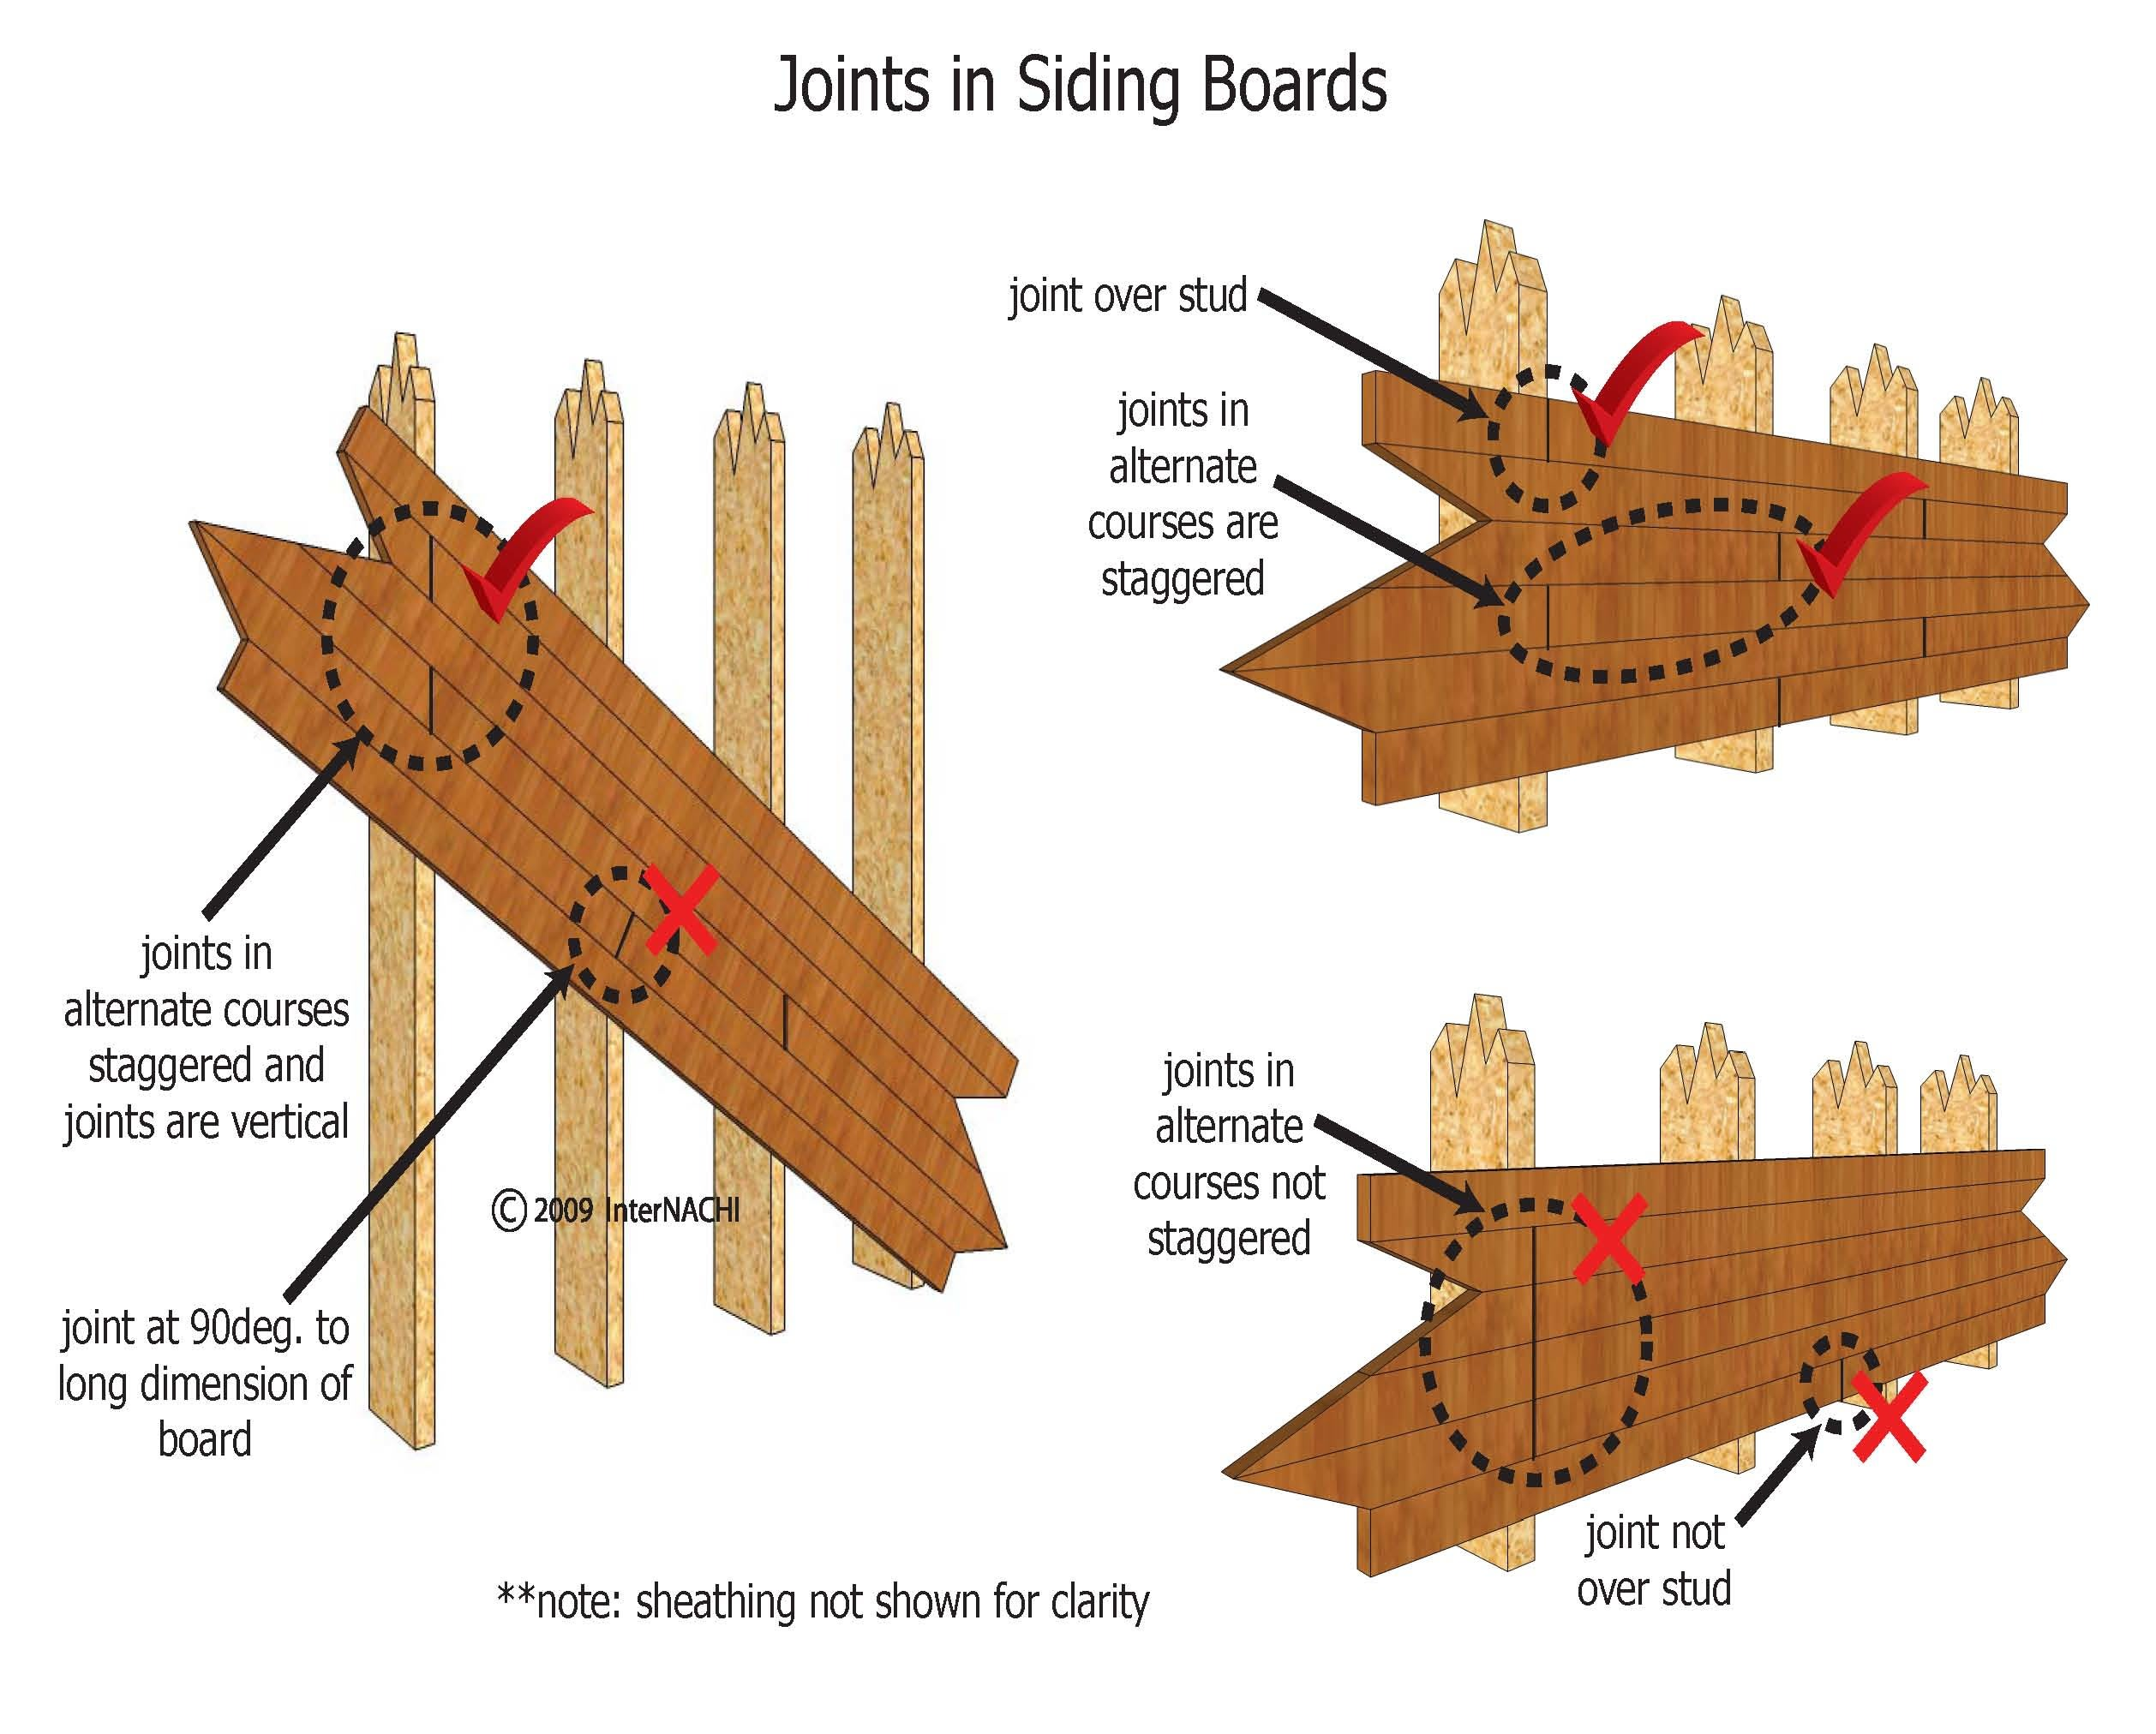 Joints in siding boards.